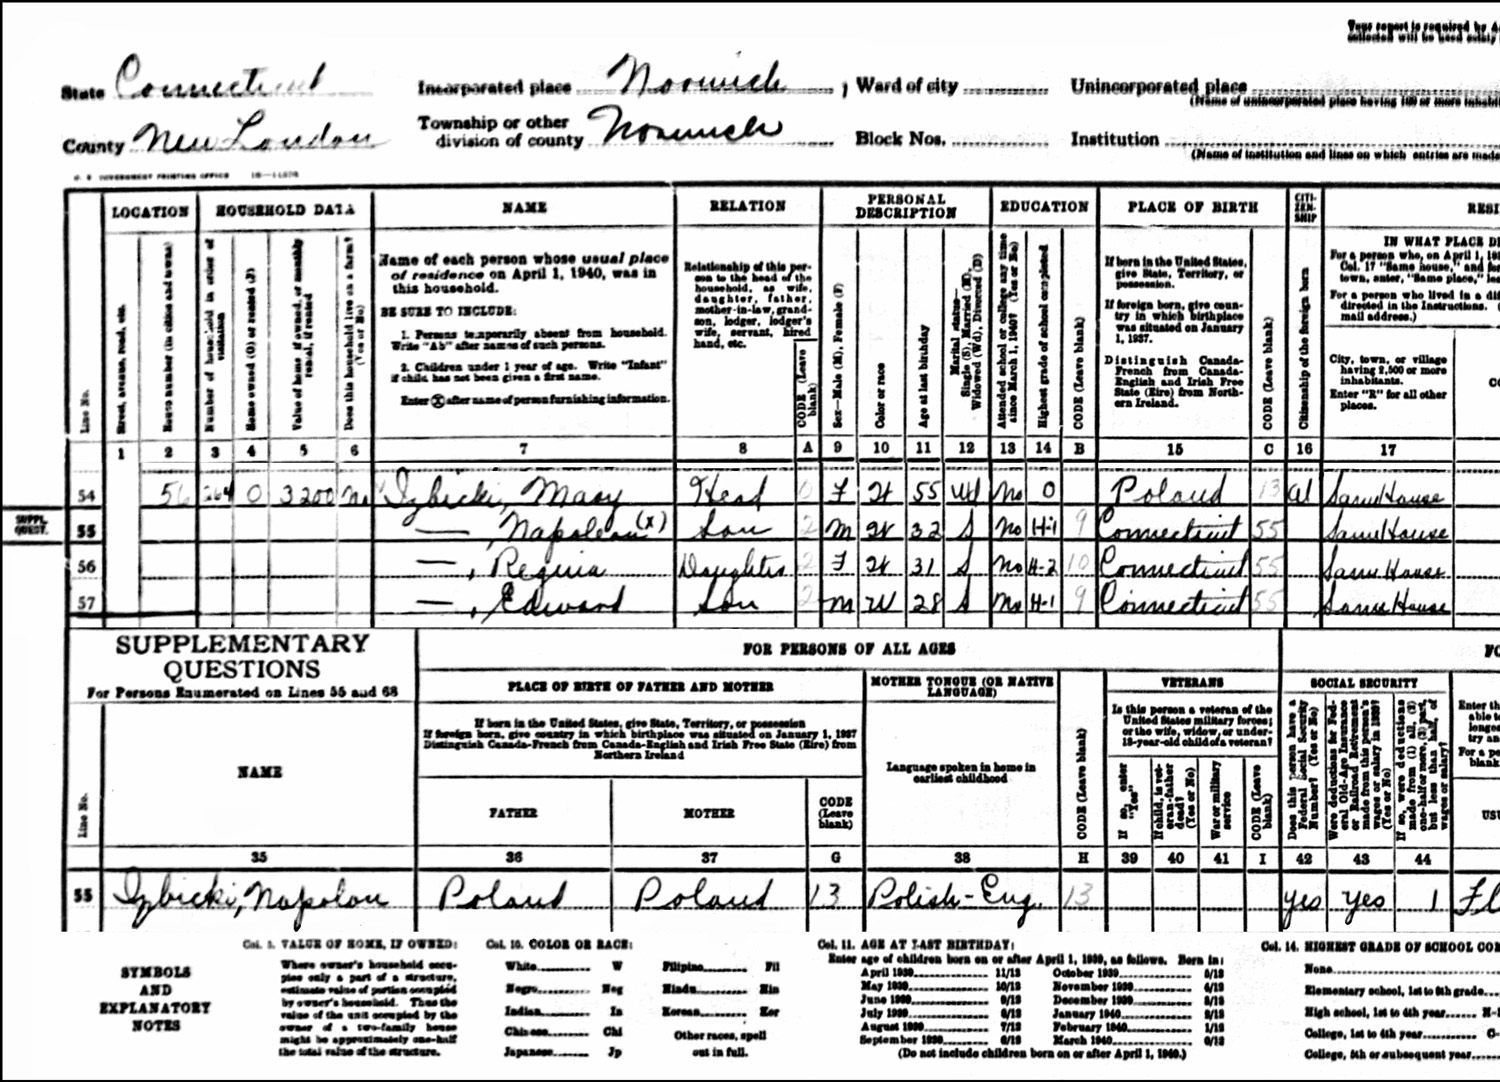 1940 US Federal Census Record for the Mary Izbicki Household (Left)